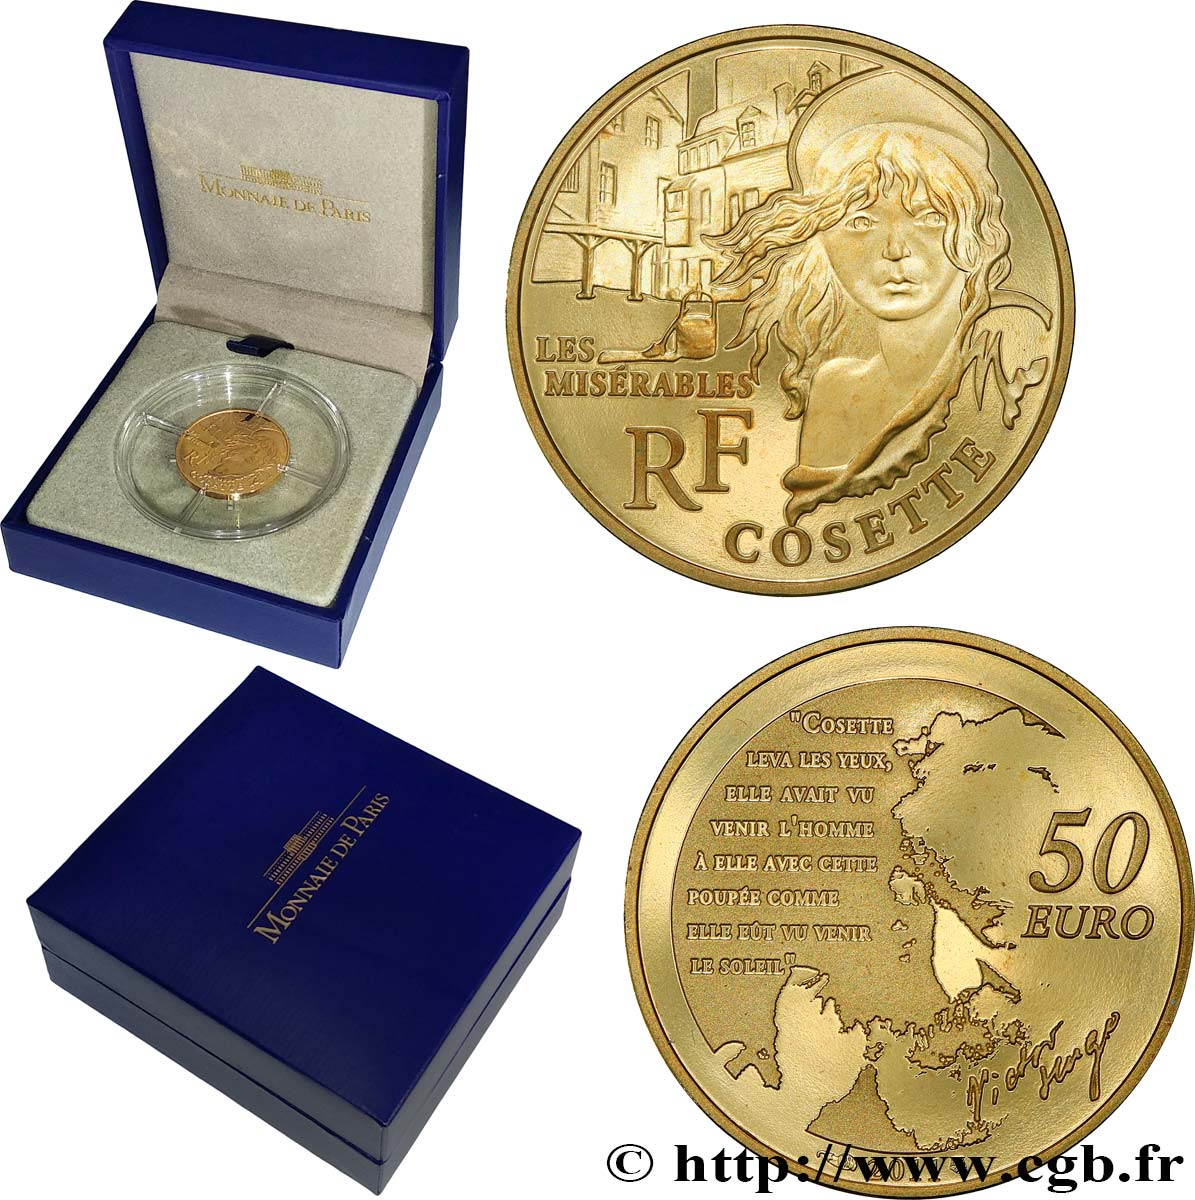 FRANCE Belle Épreuve 50 Euro or COSETTE (1/4 once) 2011 Proof set